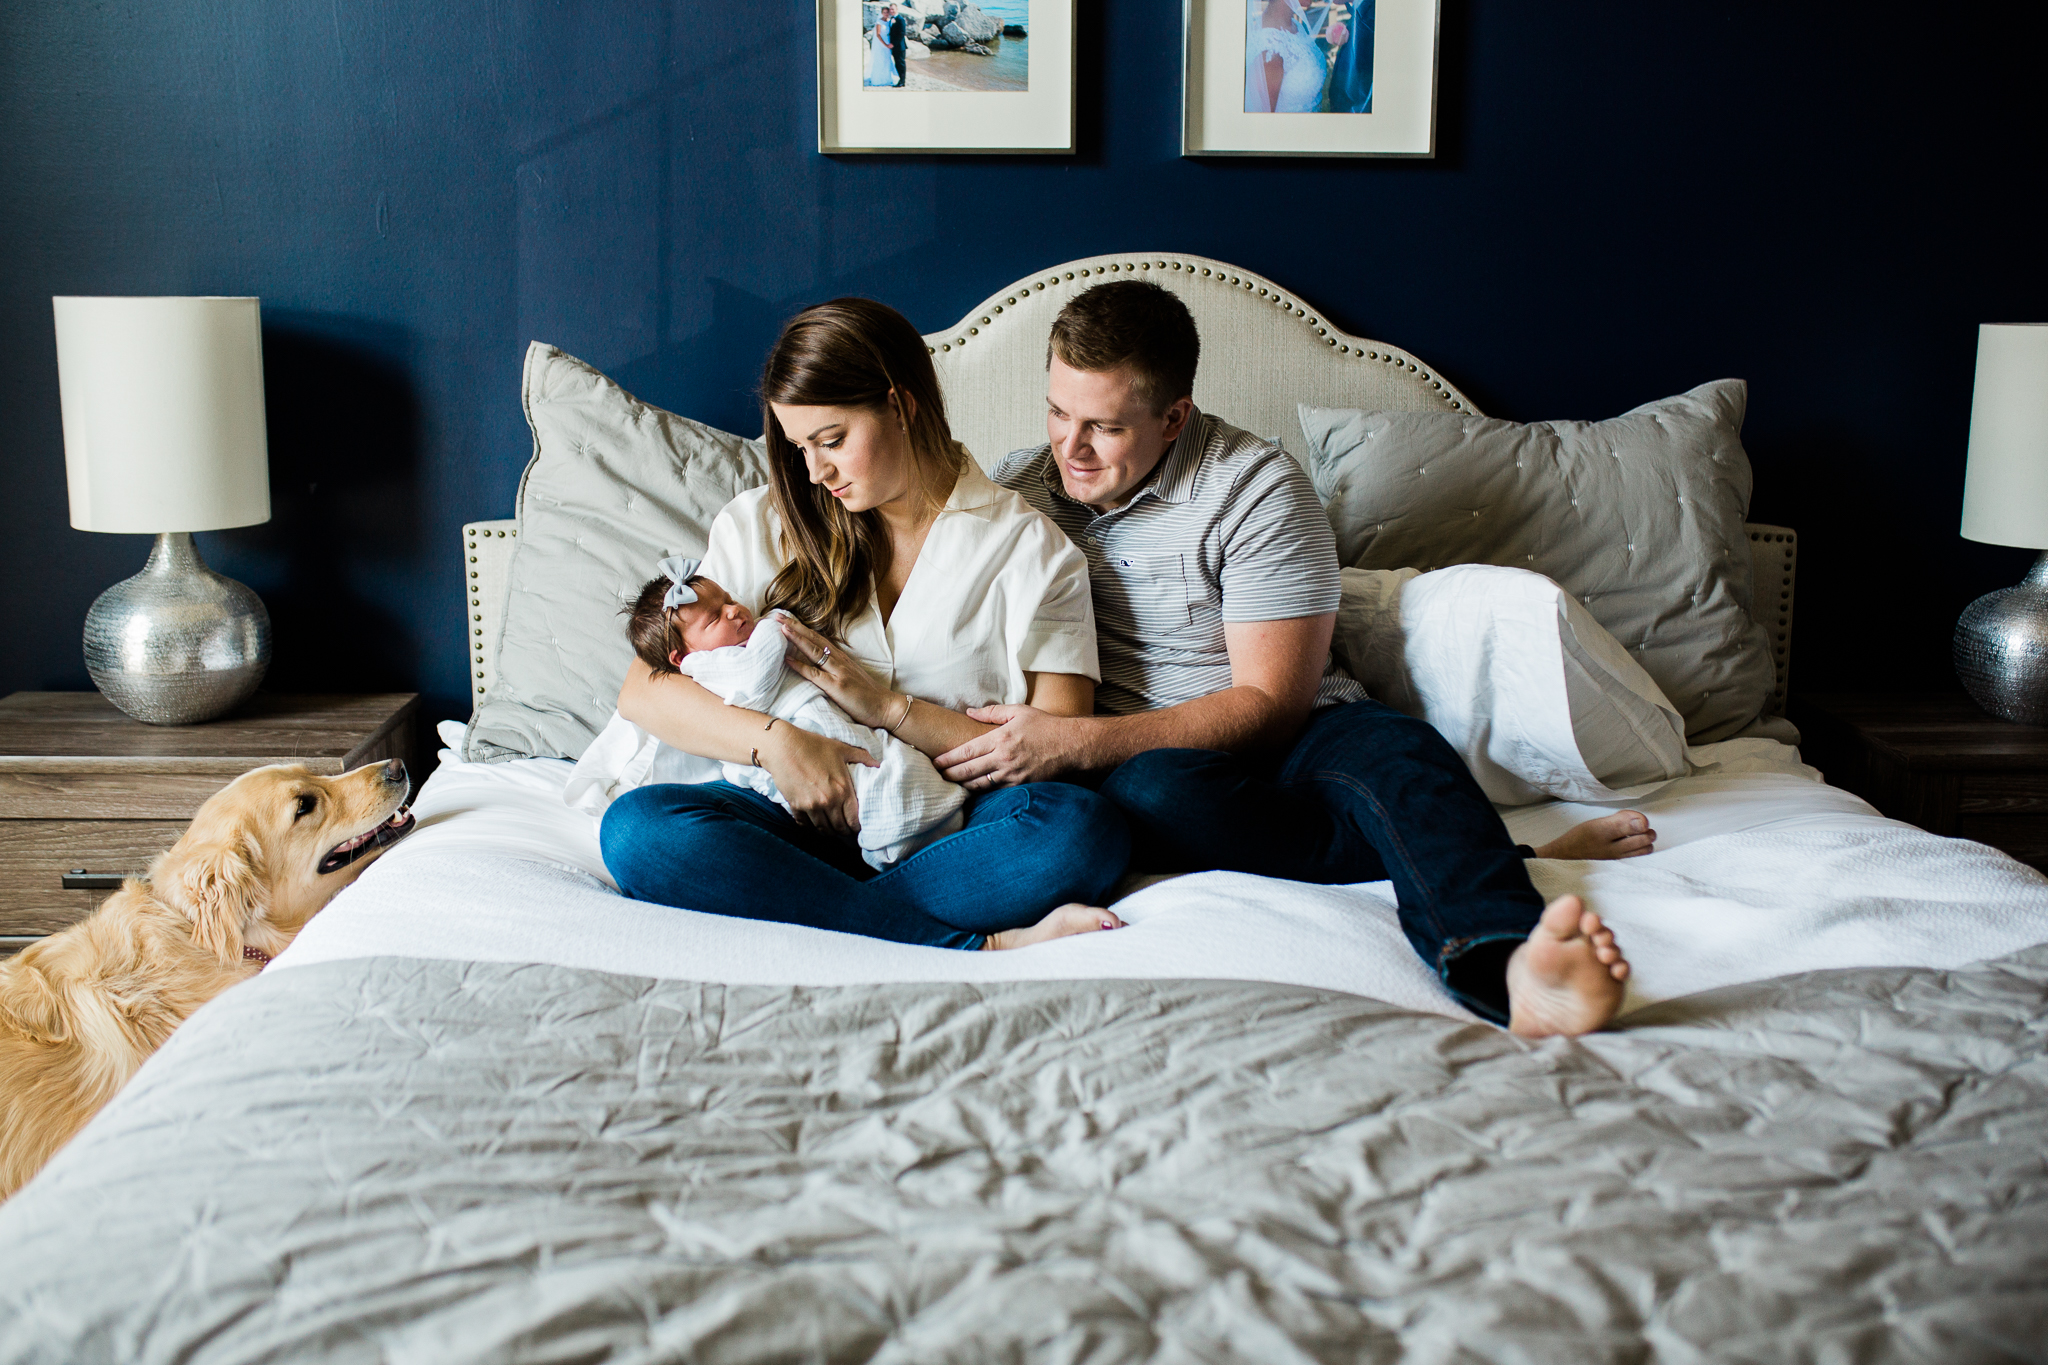 Couple cuddles their newborn baby on the bed while their dog watches, Overland Park and Johnson County lifestyle newborn photographer, Rebecca Clair Photography